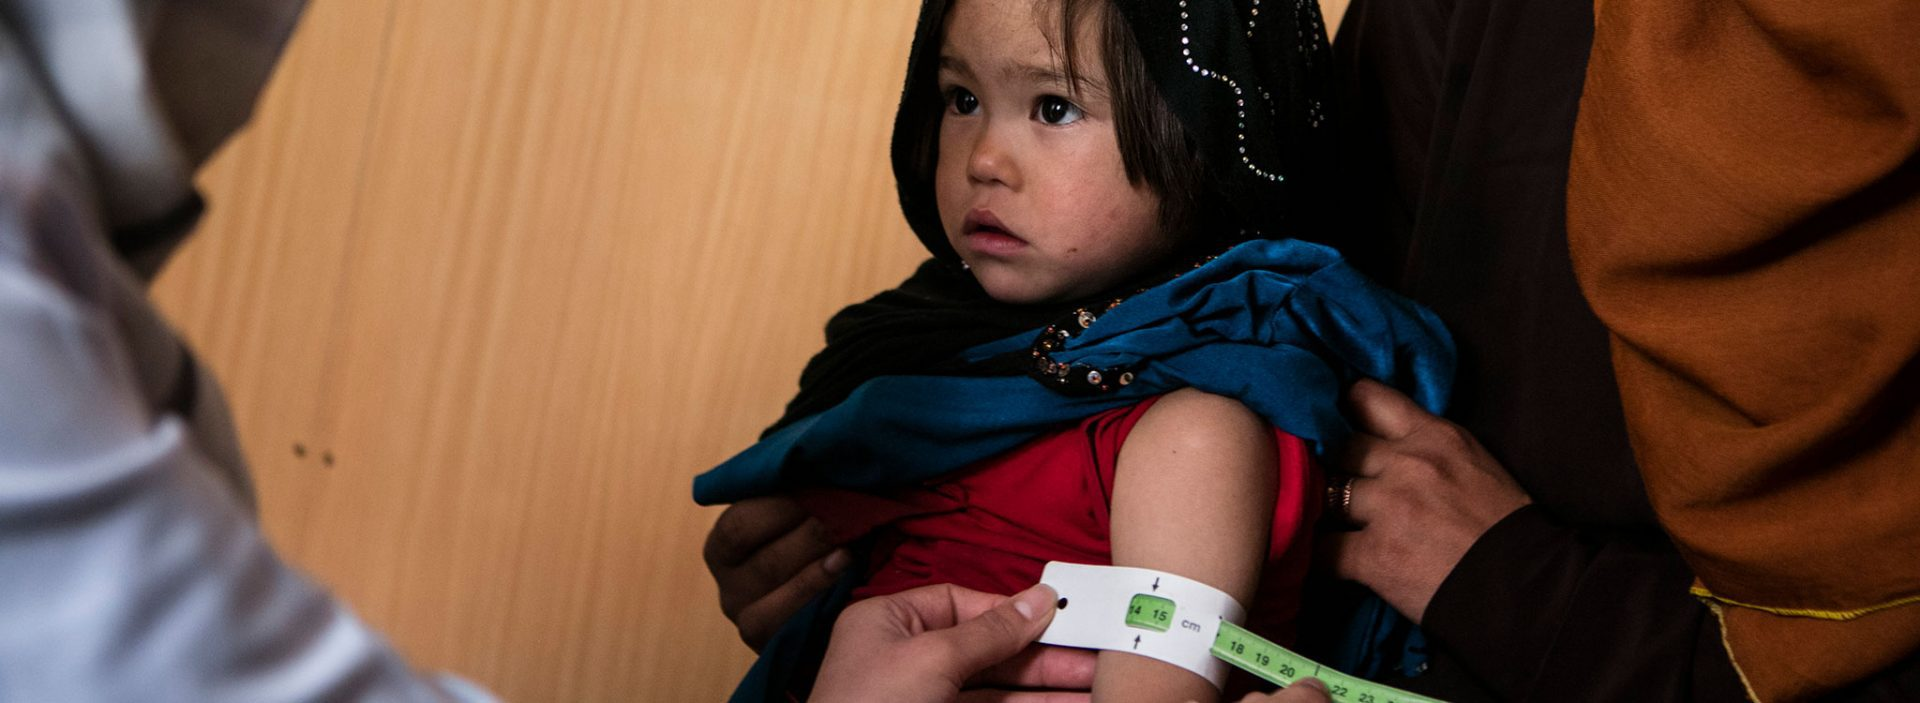 A girl in Afghanistan is screened for malnutrition using a MUAC band.